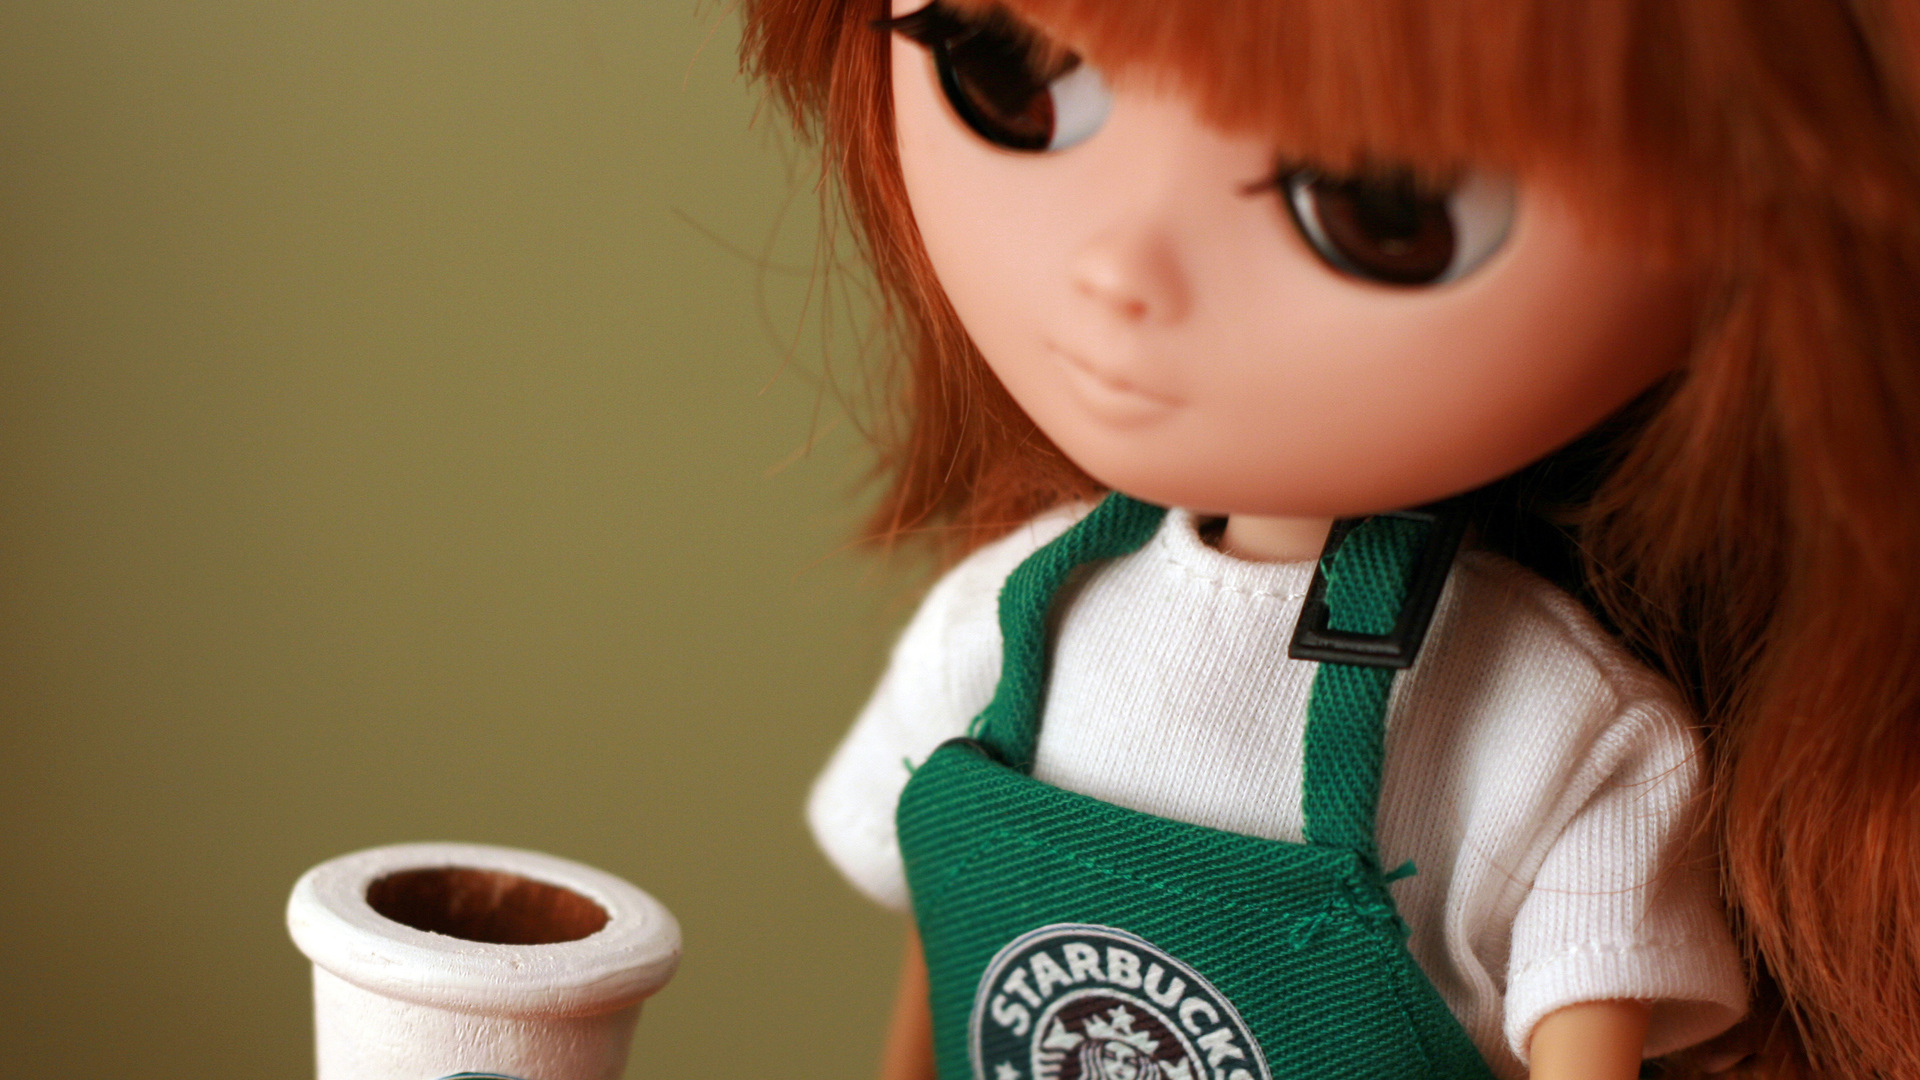 Cute Girly Live Wallpapers For Android Cute Starbucks Wallpaper Doll 2018 Wallpapers Hd